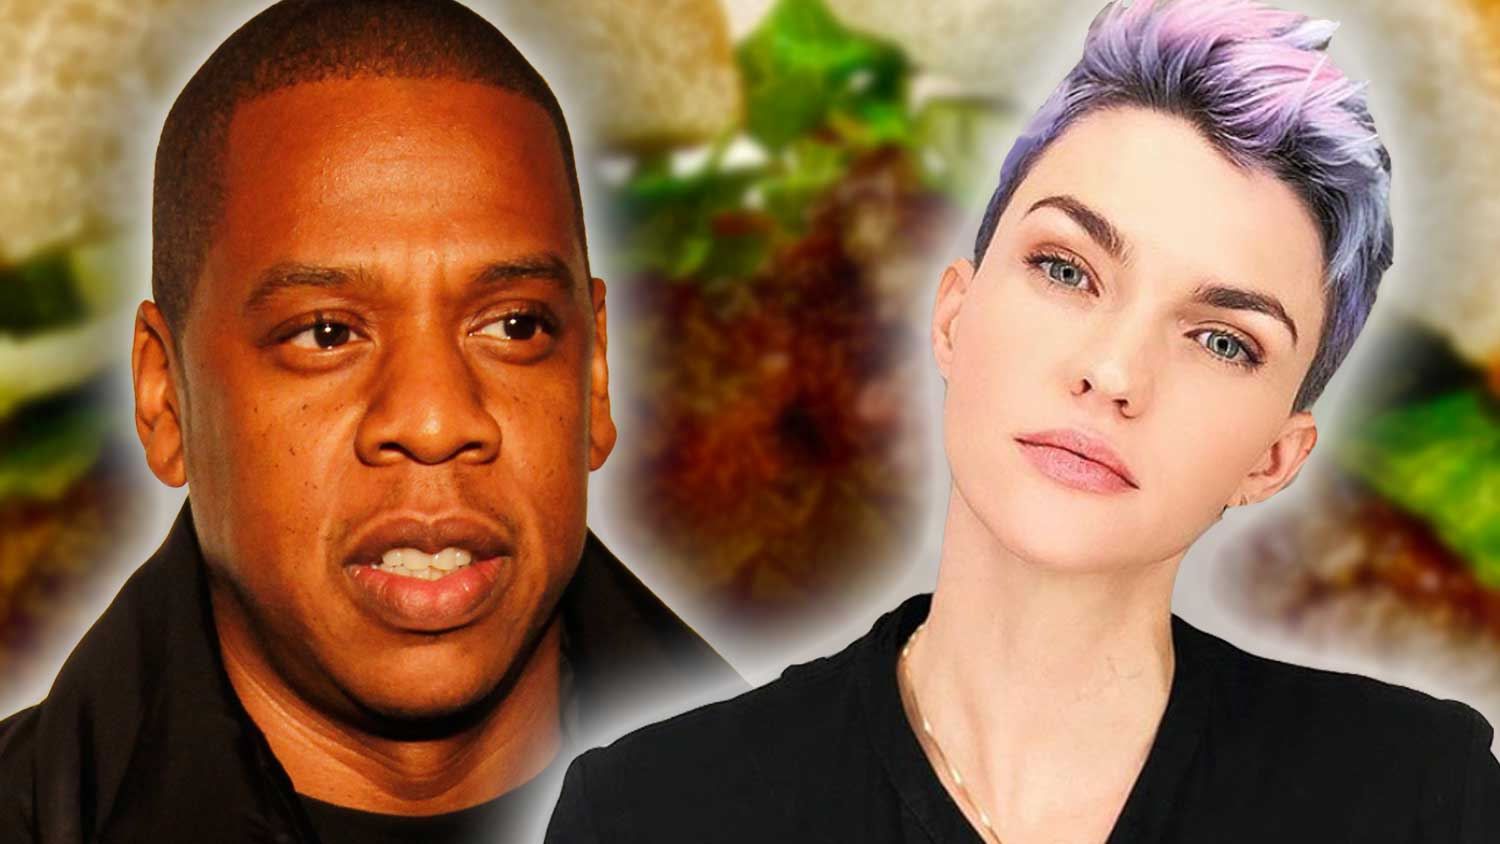 Jay-Z, Ruby Rose, and Like 100 Other Celebrities Just Invested in Vegan Meat